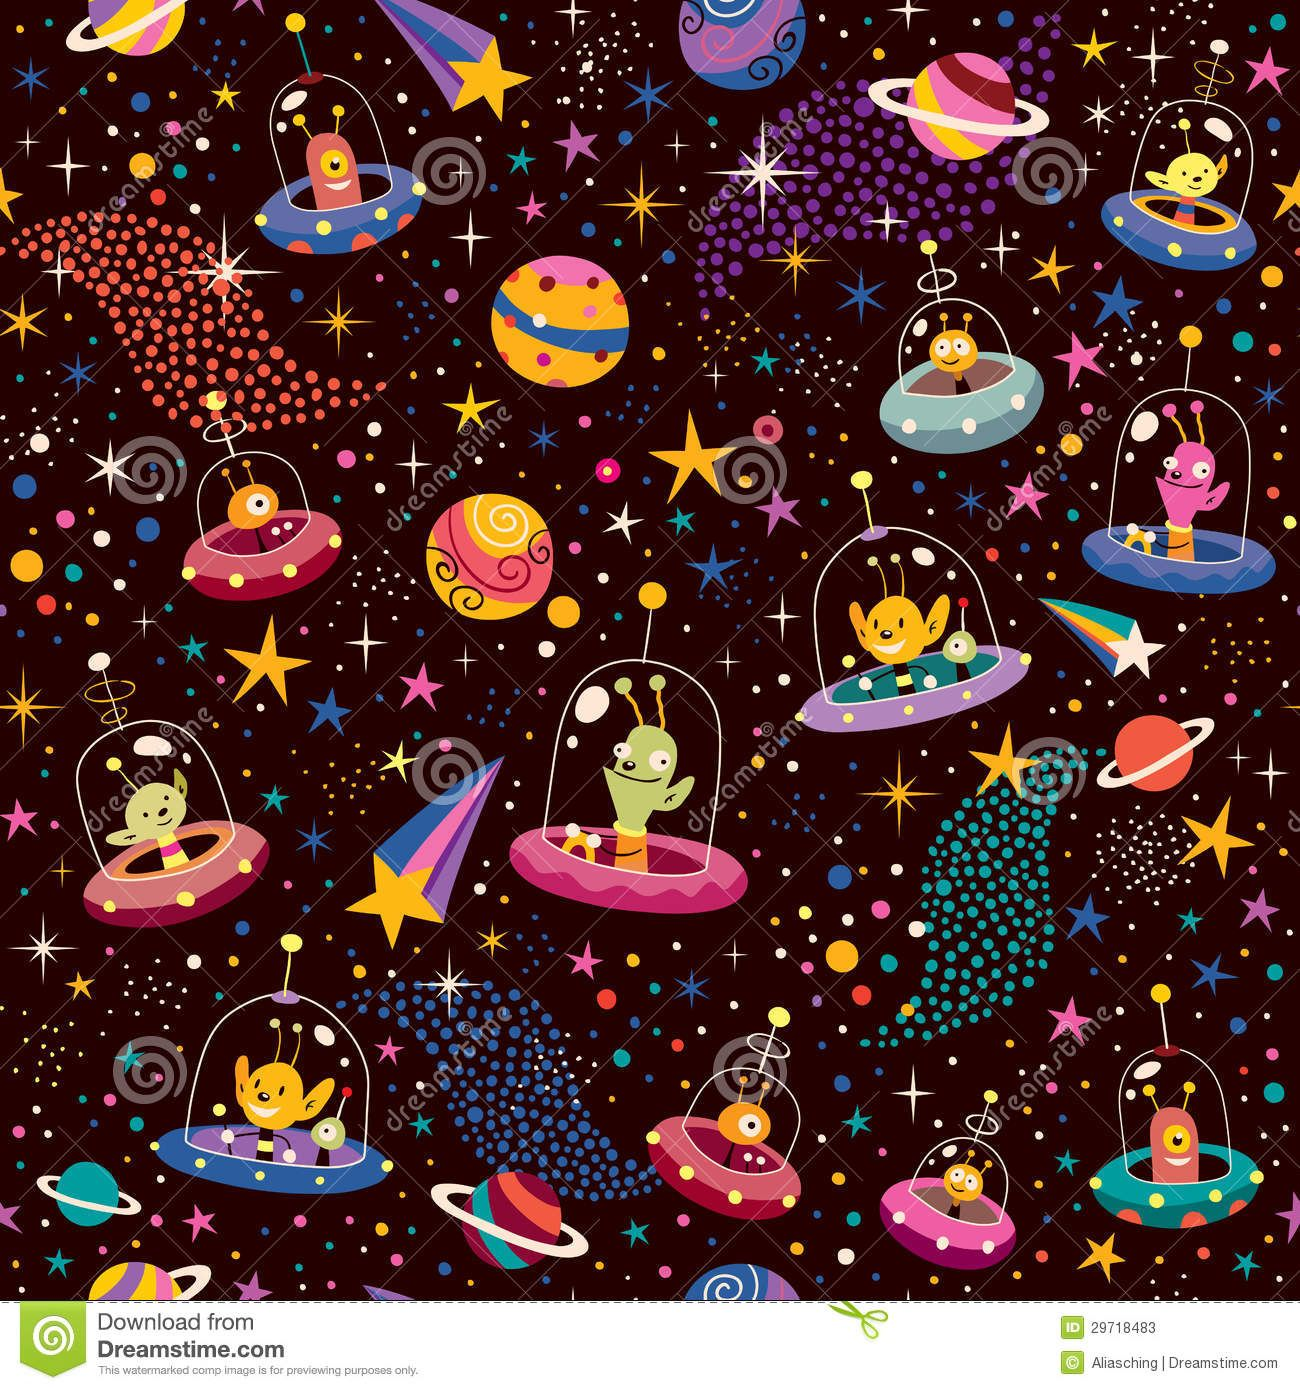 Illustration about Pattern illustration with cute aliens